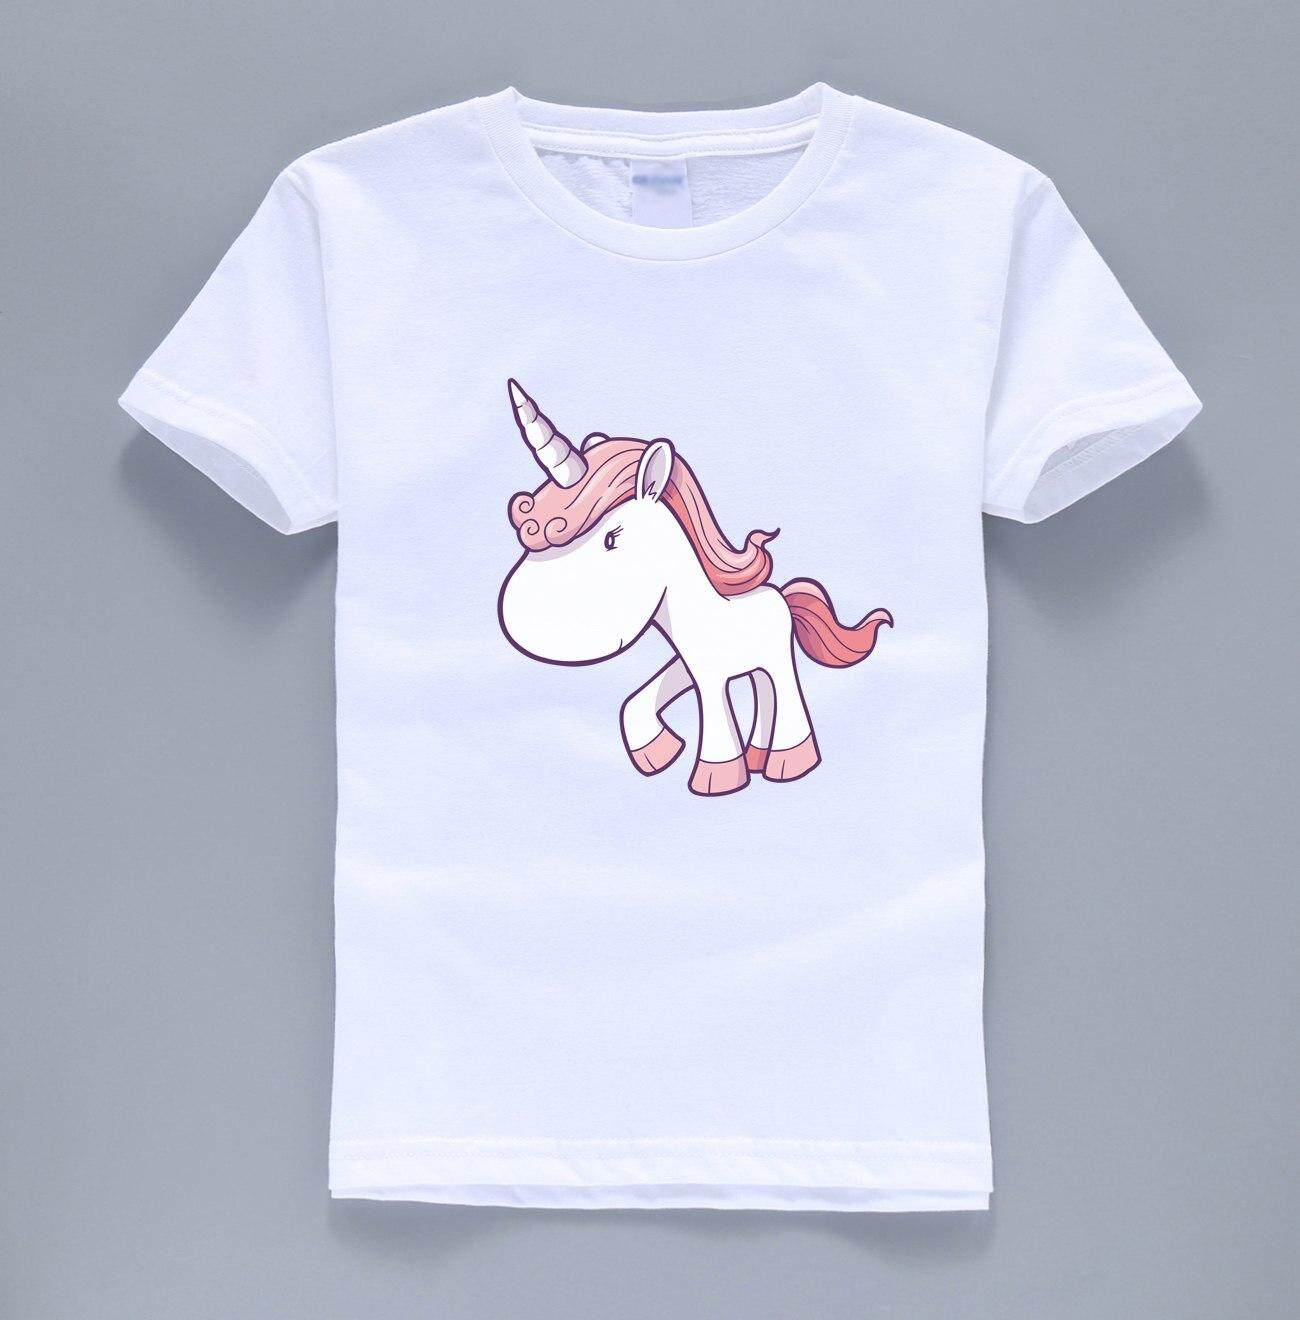 0dfc3c538a04d Product details of 2019 summer new fashion hot sale unicorn printing tops t shirt  kids horse kawaii t shirts boys girls short sleeve harajuku shirt